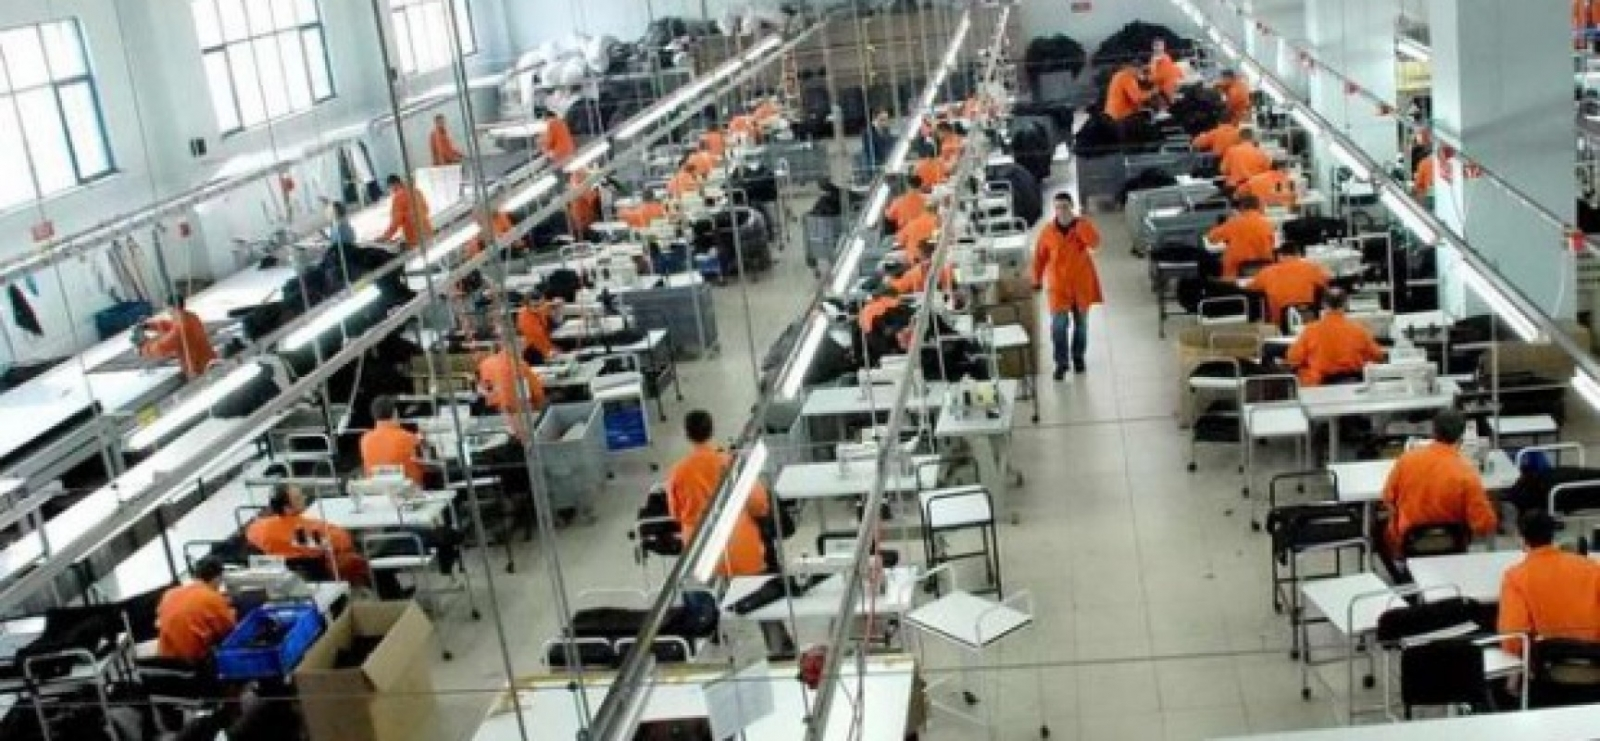 Workers in FYROM among the lowest paid in Europe